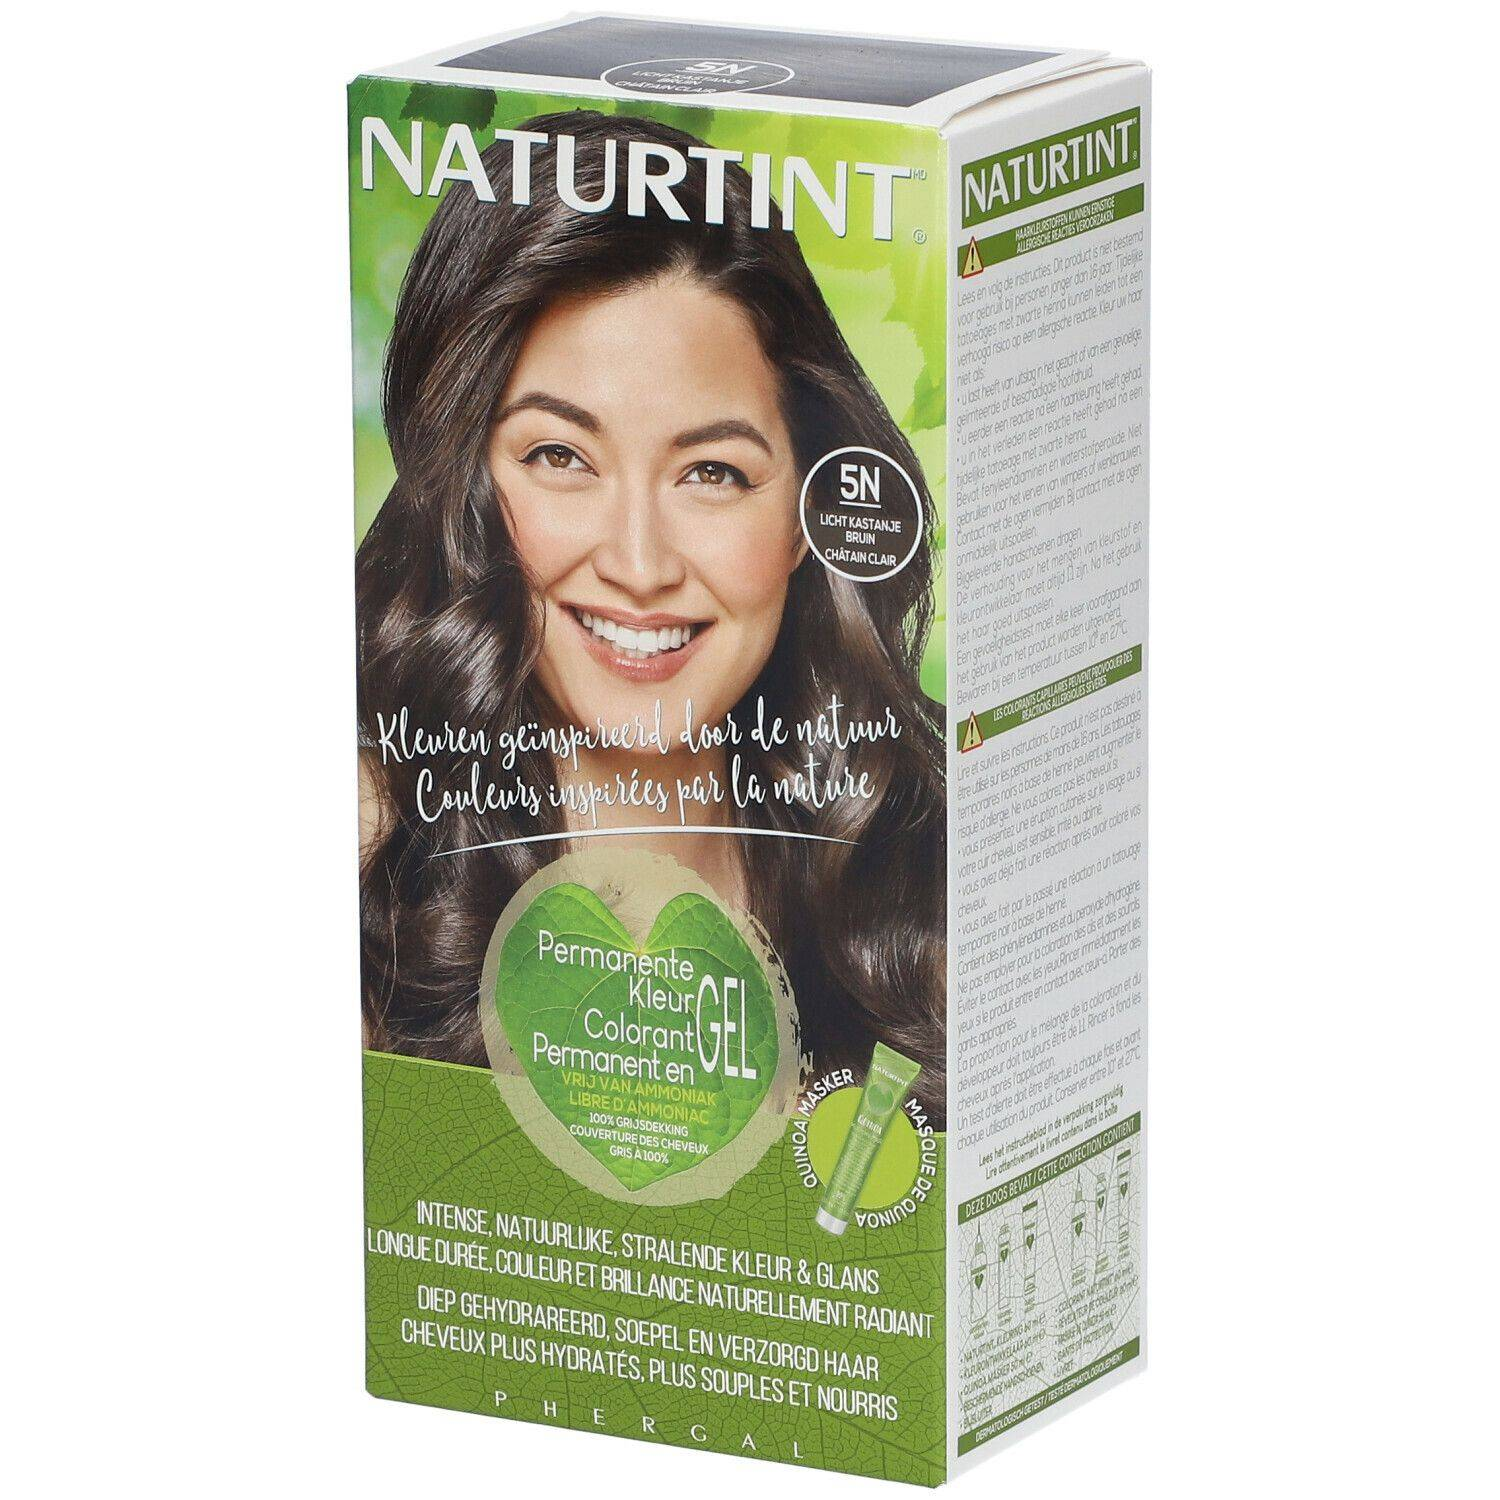 NATURTINT® Coloration Permanente 5N Châtain clair ml emballage(s) combi